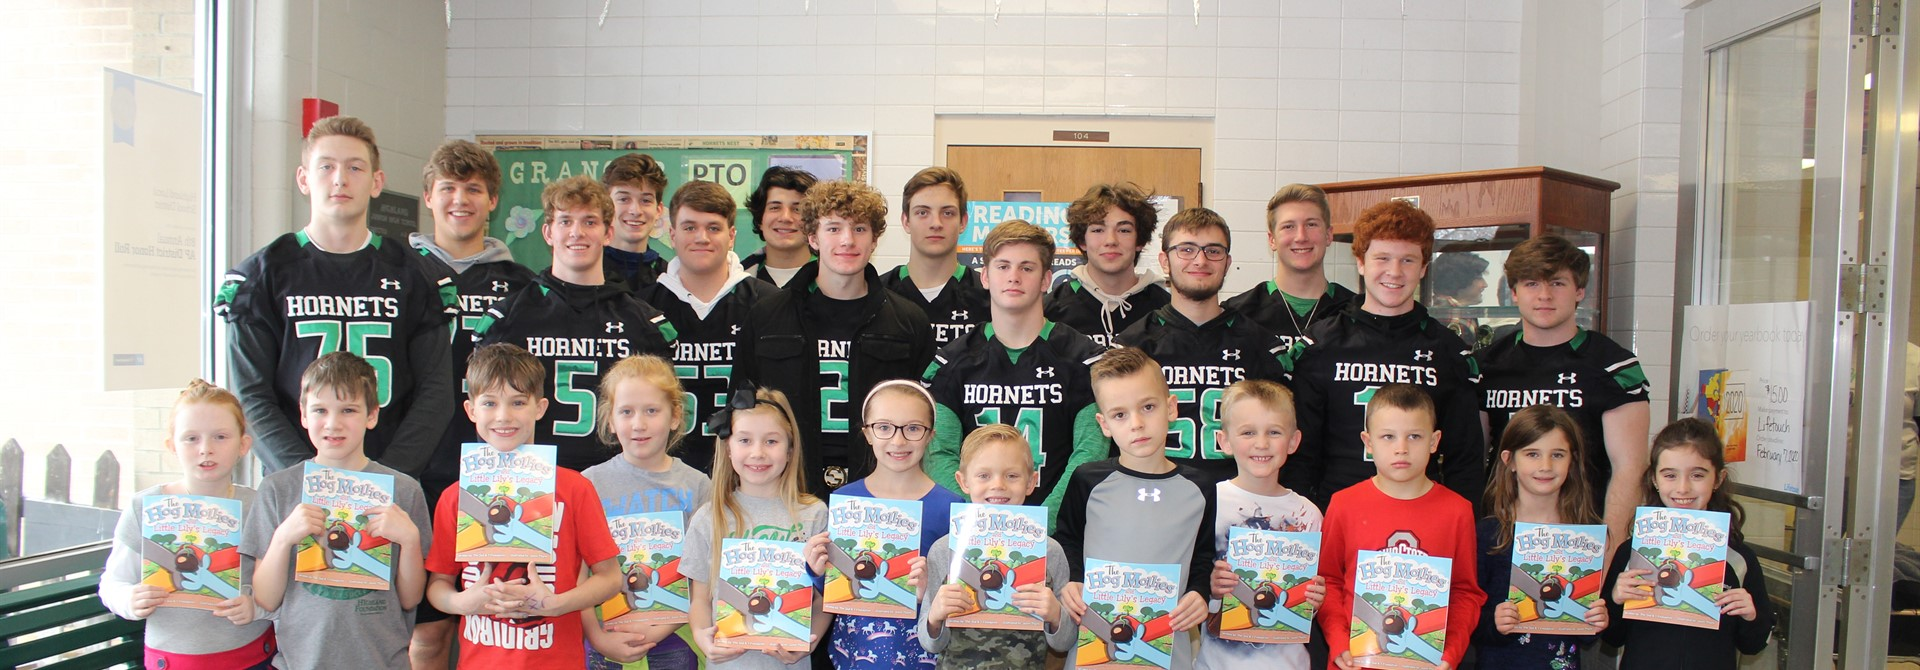 Highland Football Players Visit Granger Elementary